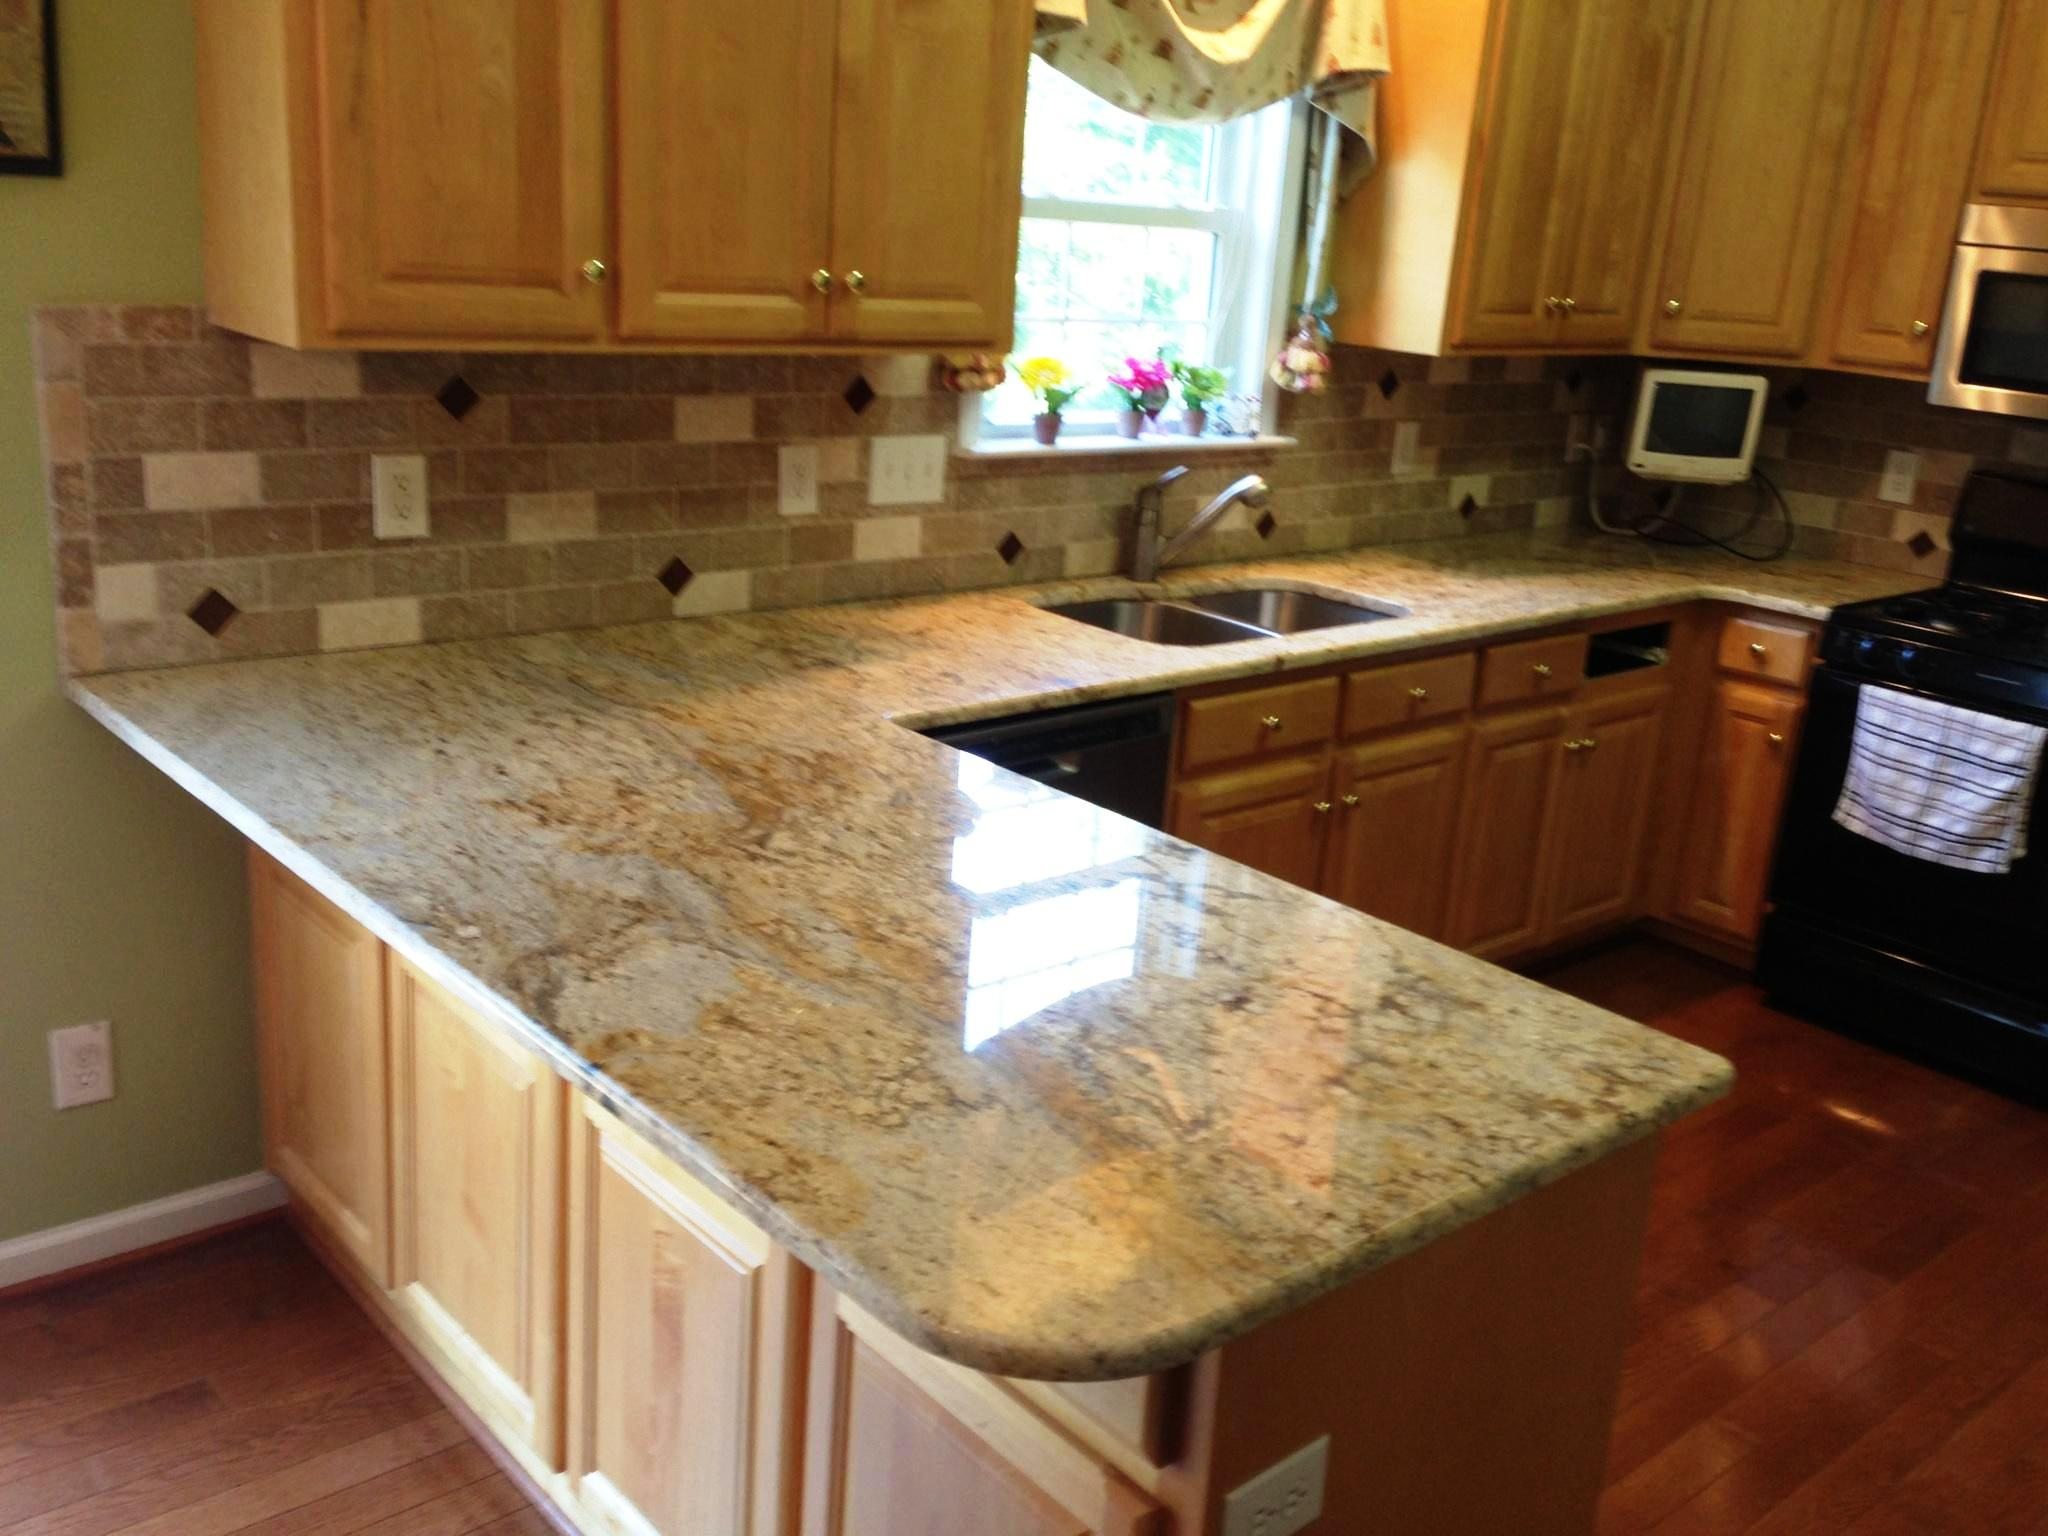 Kashmir Gold Granite Kitchen Colonial Gold Granite Countertops Charlotte Nc